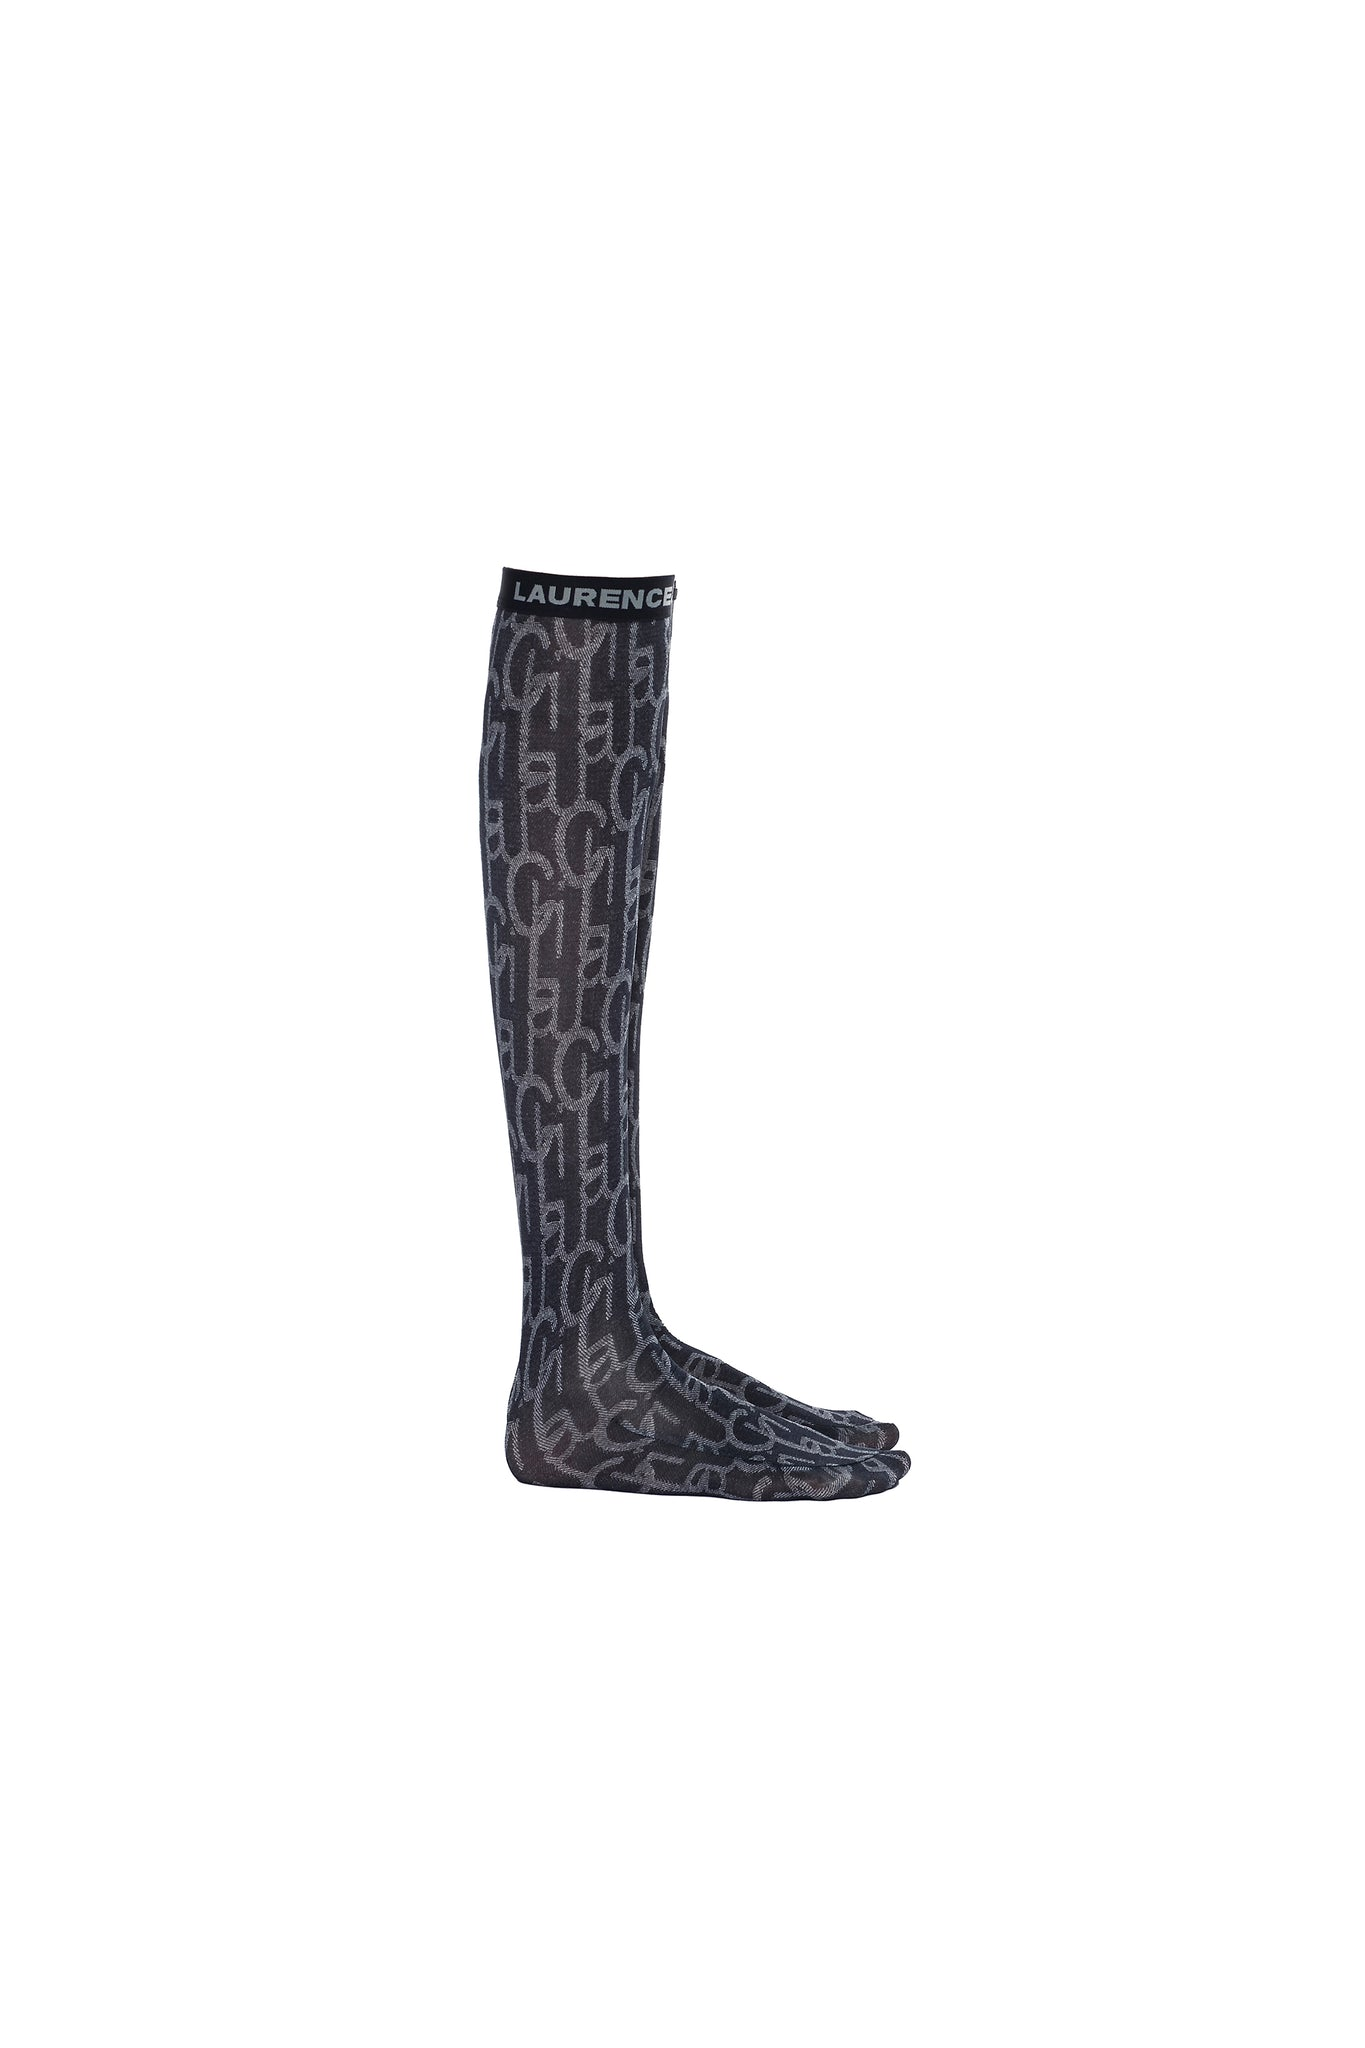 Dark Blue Laulau Chichi Print Knee-High Socks